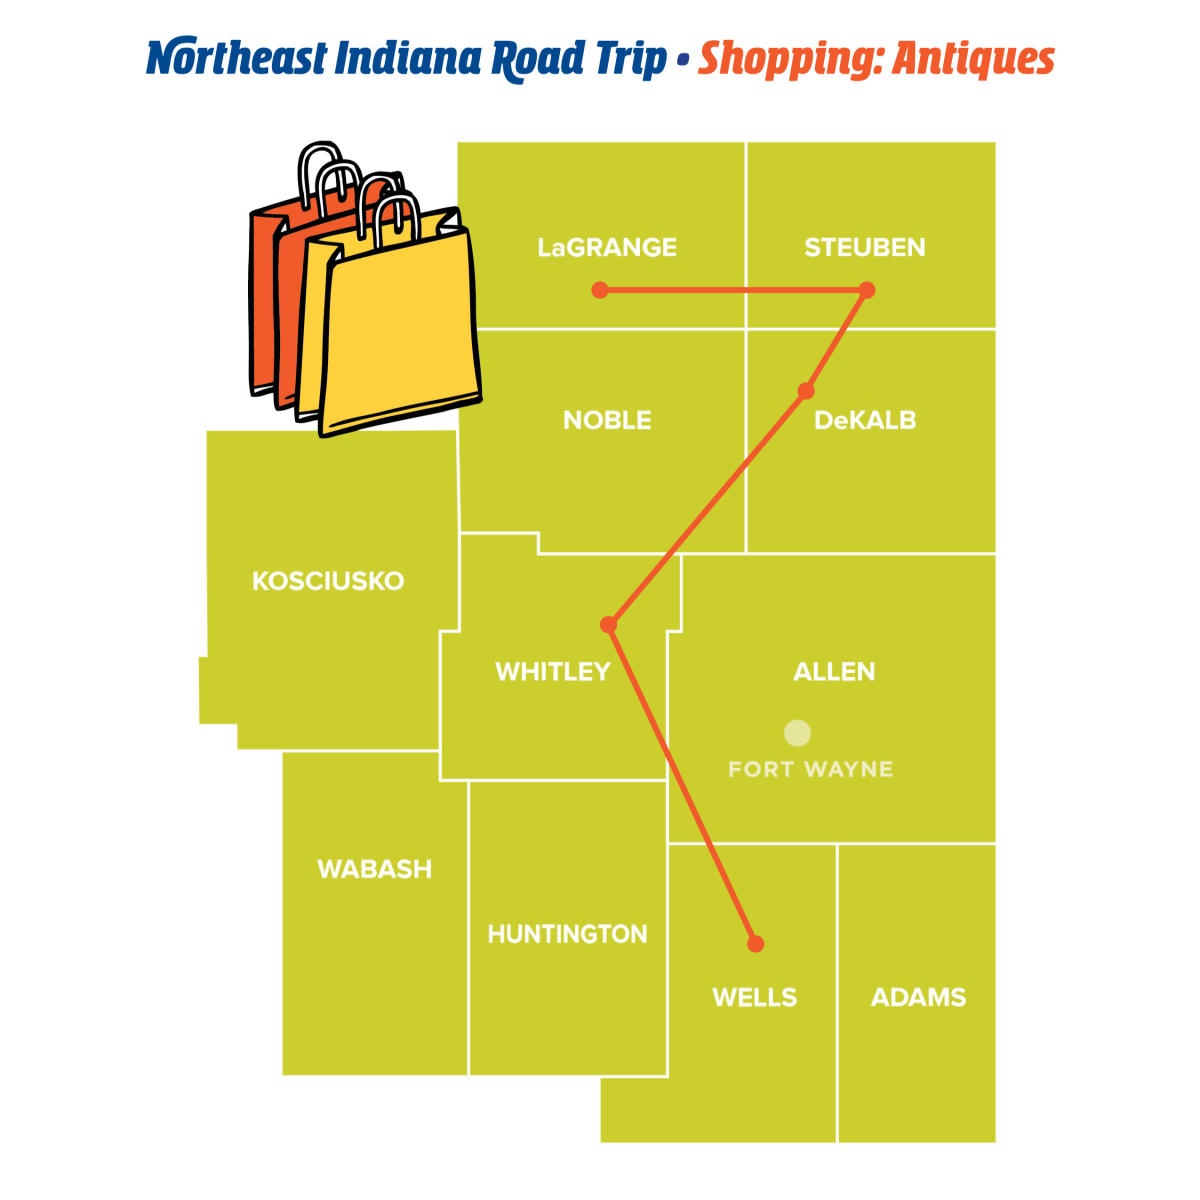 Antiques - Northeast Indiana Road Trips